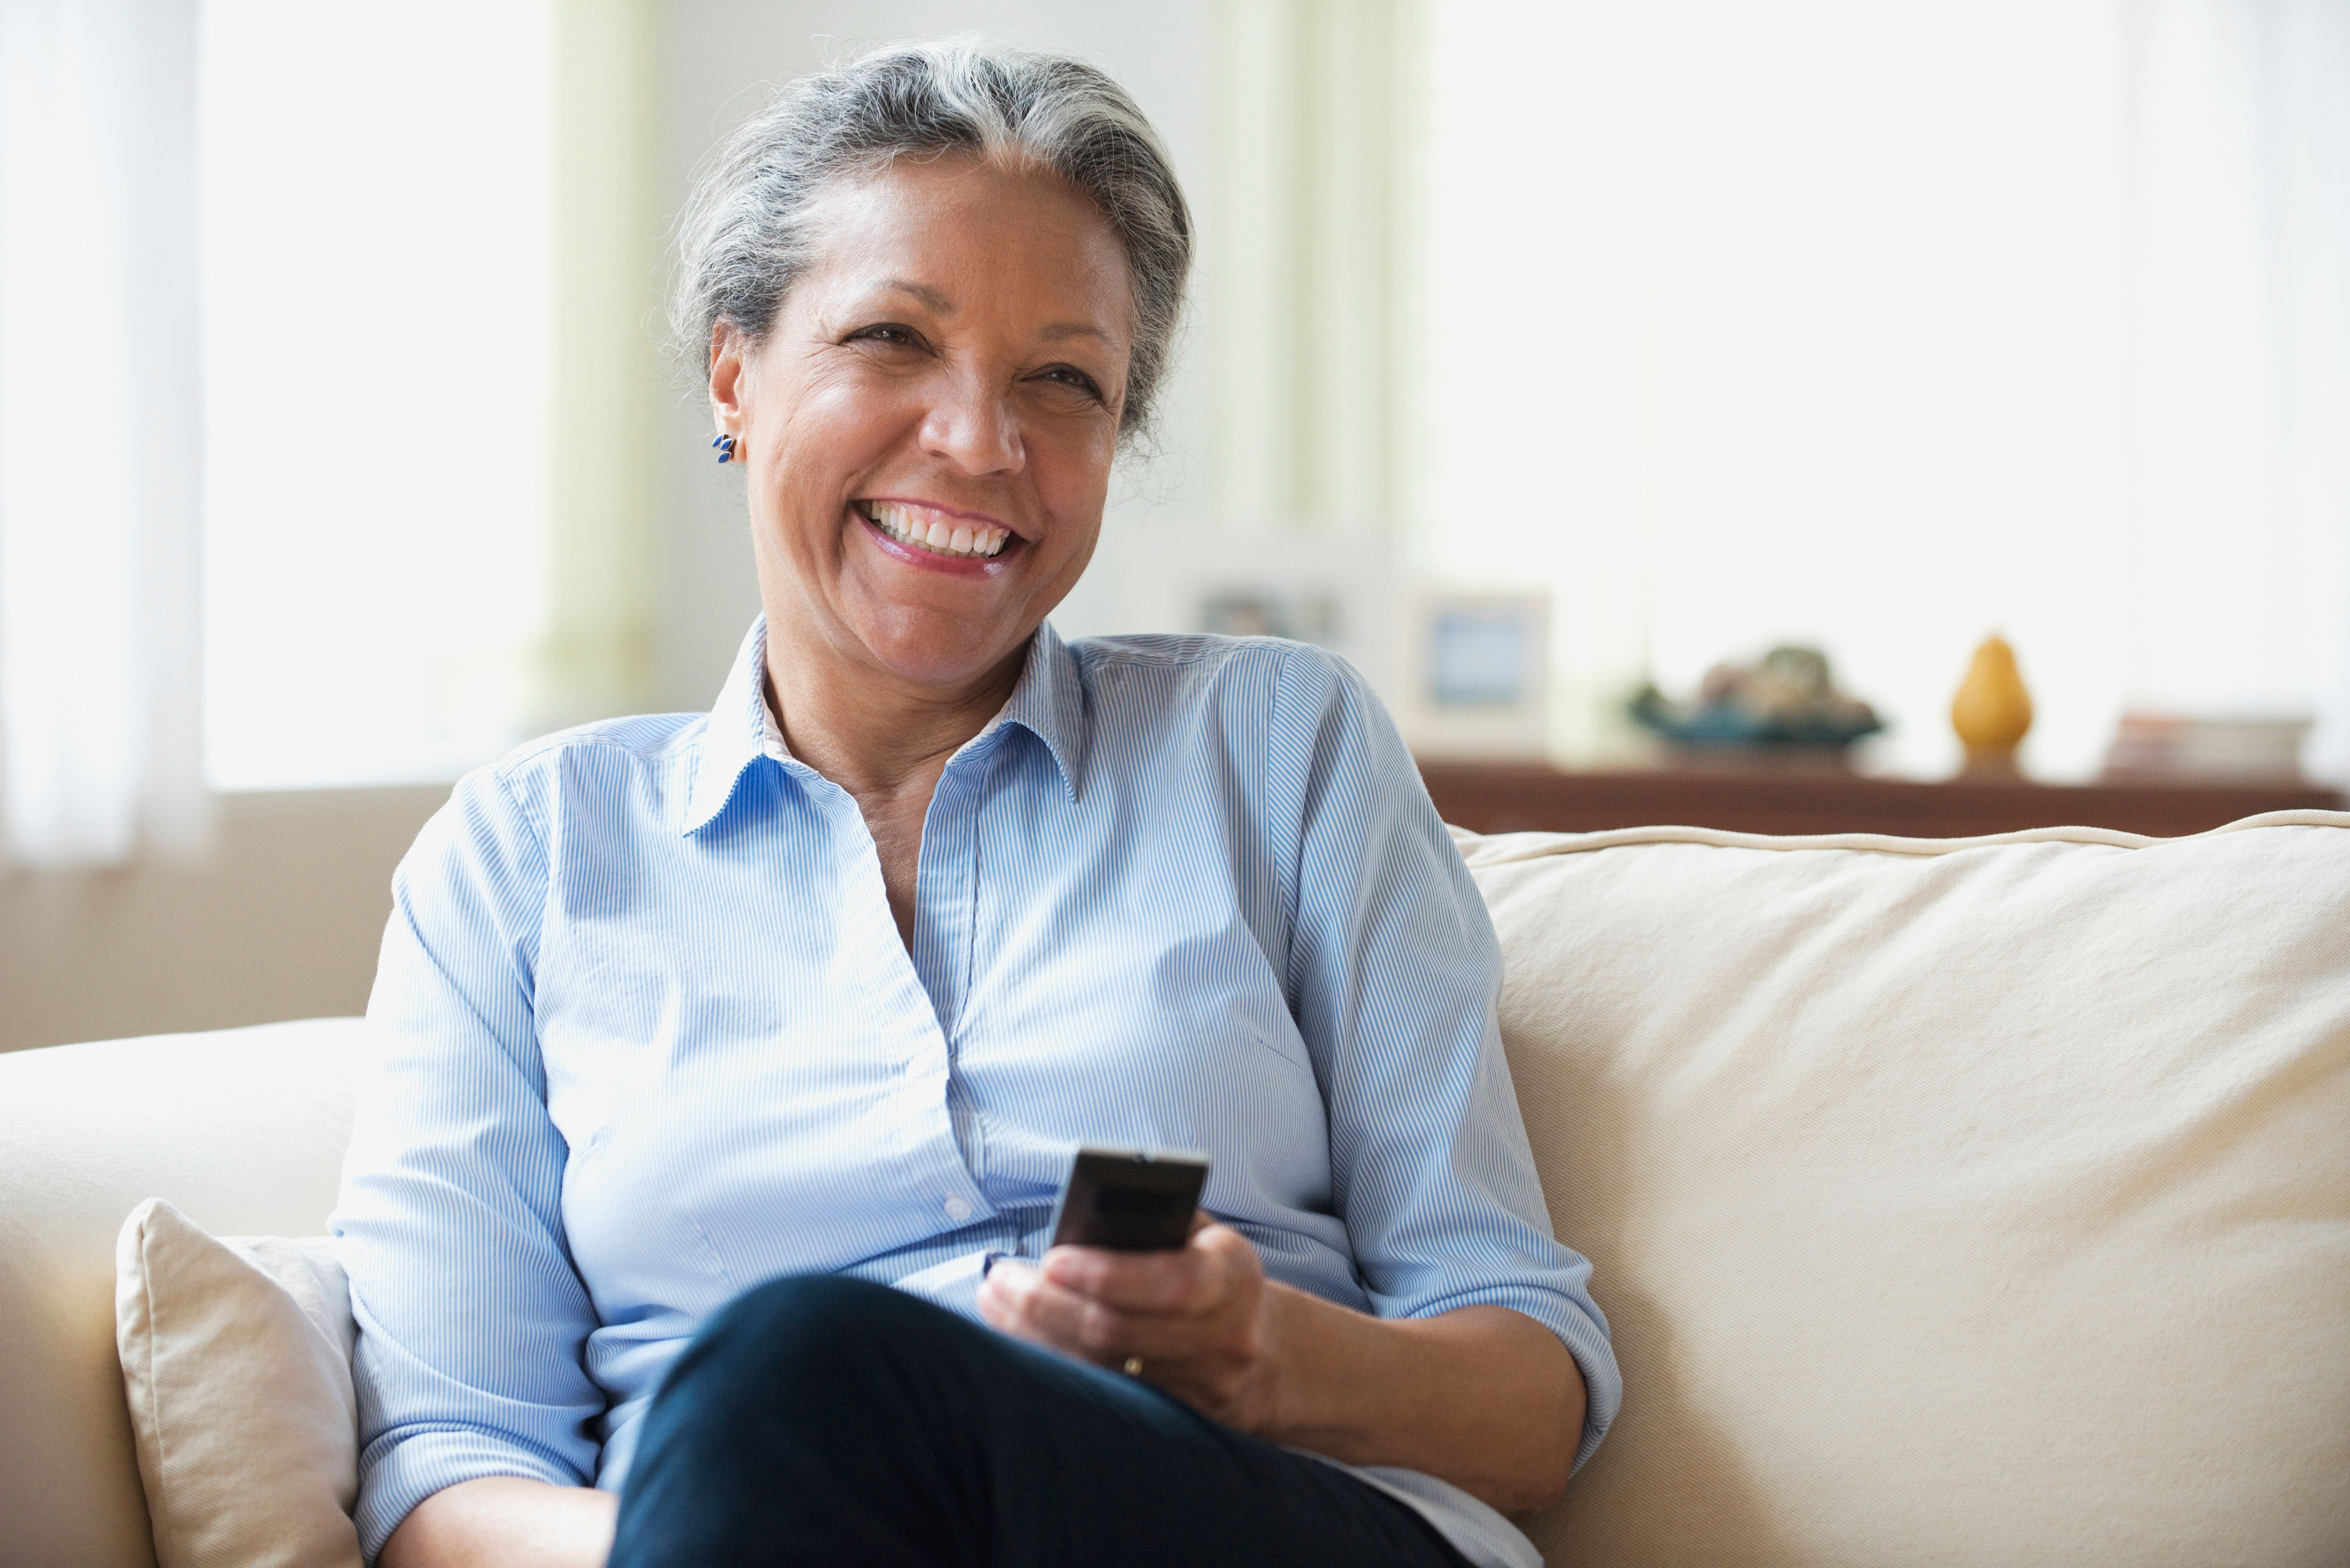 A woman holds a remote control and smiles